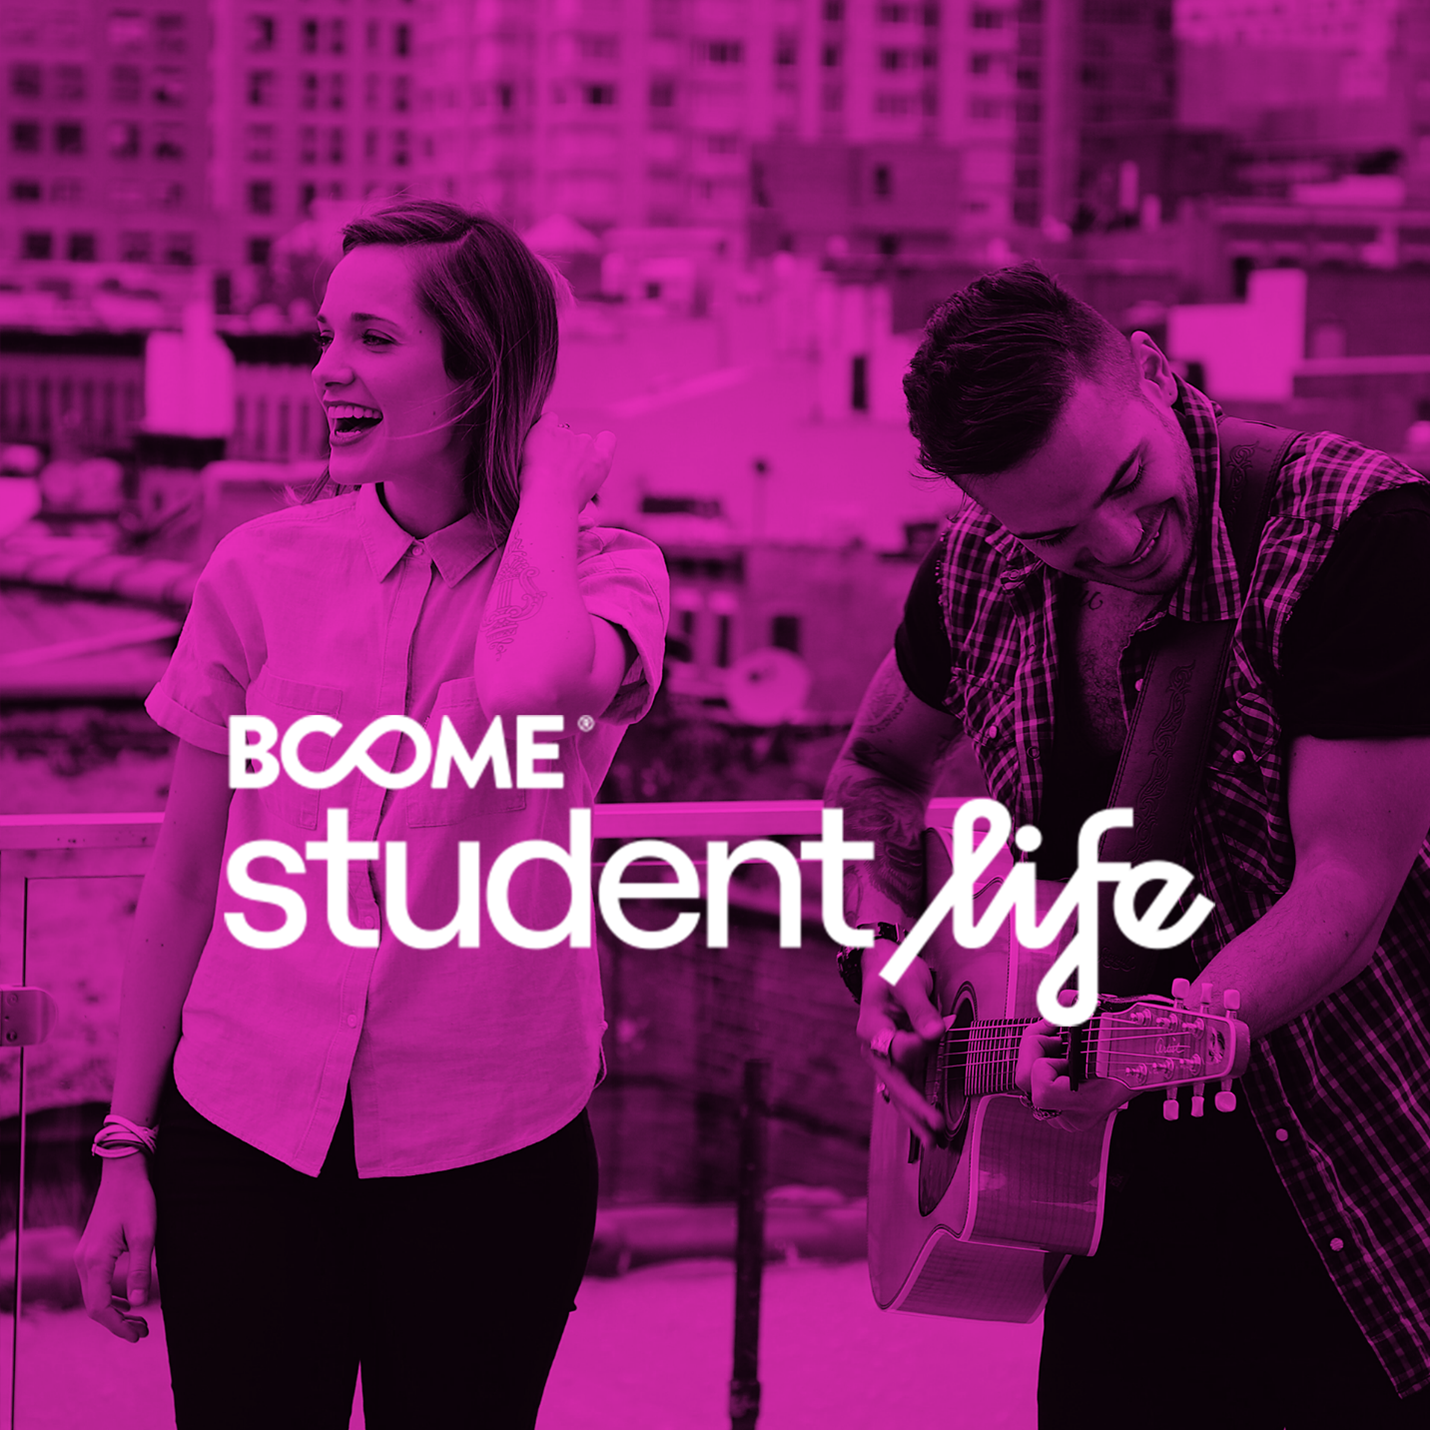 Student Life, the BCOME activitiy program that you don't want to miss